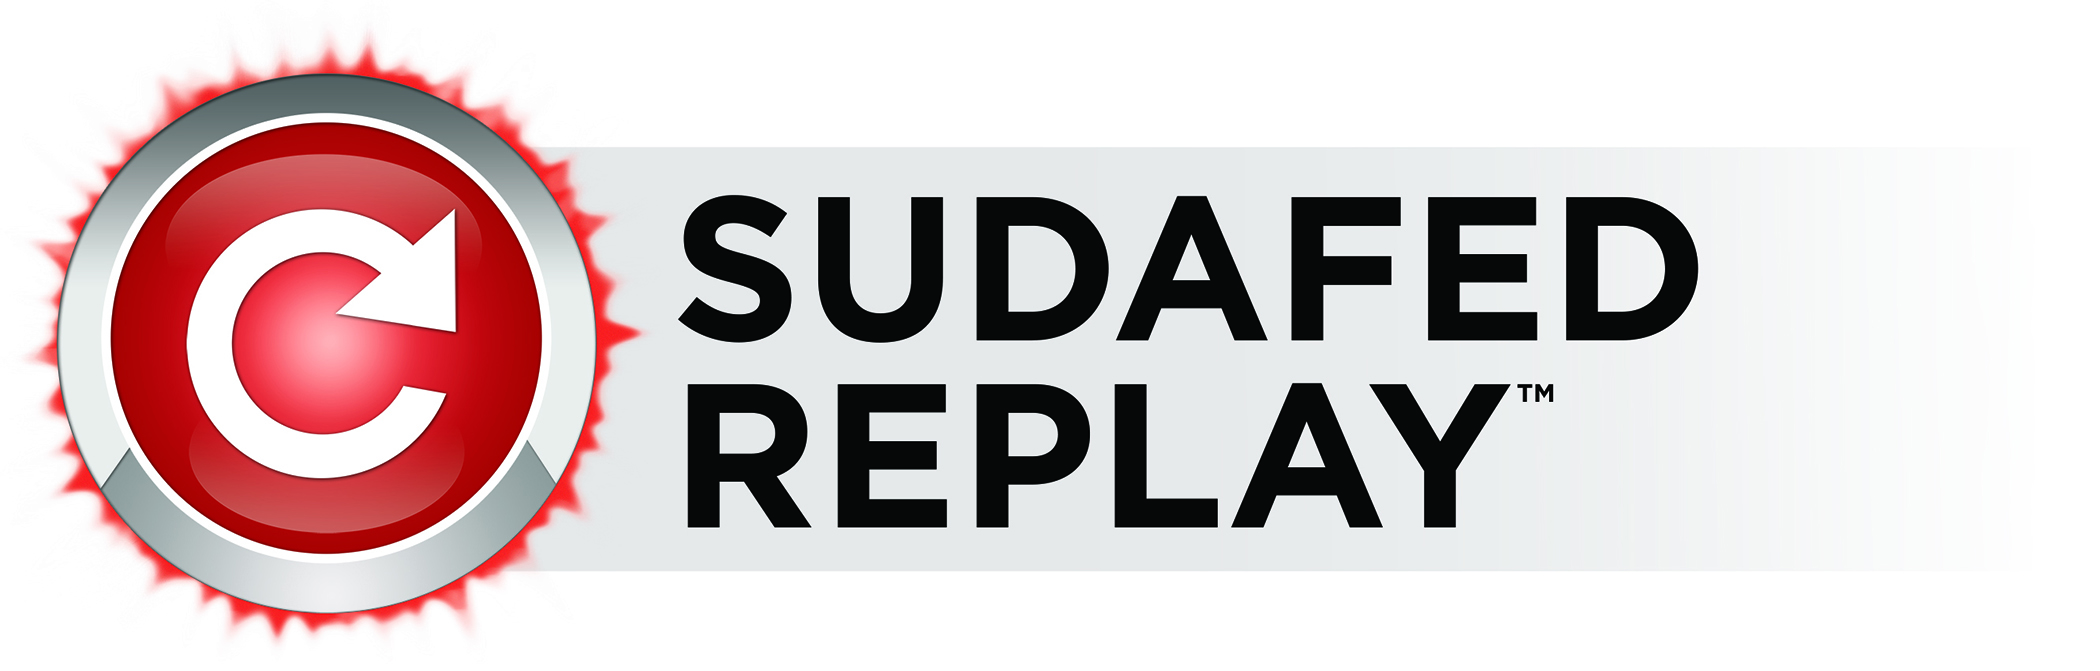 Do You Suffer with Sinus Pain? SUDAFED REPLAY™ Can Help #SudafedReplay